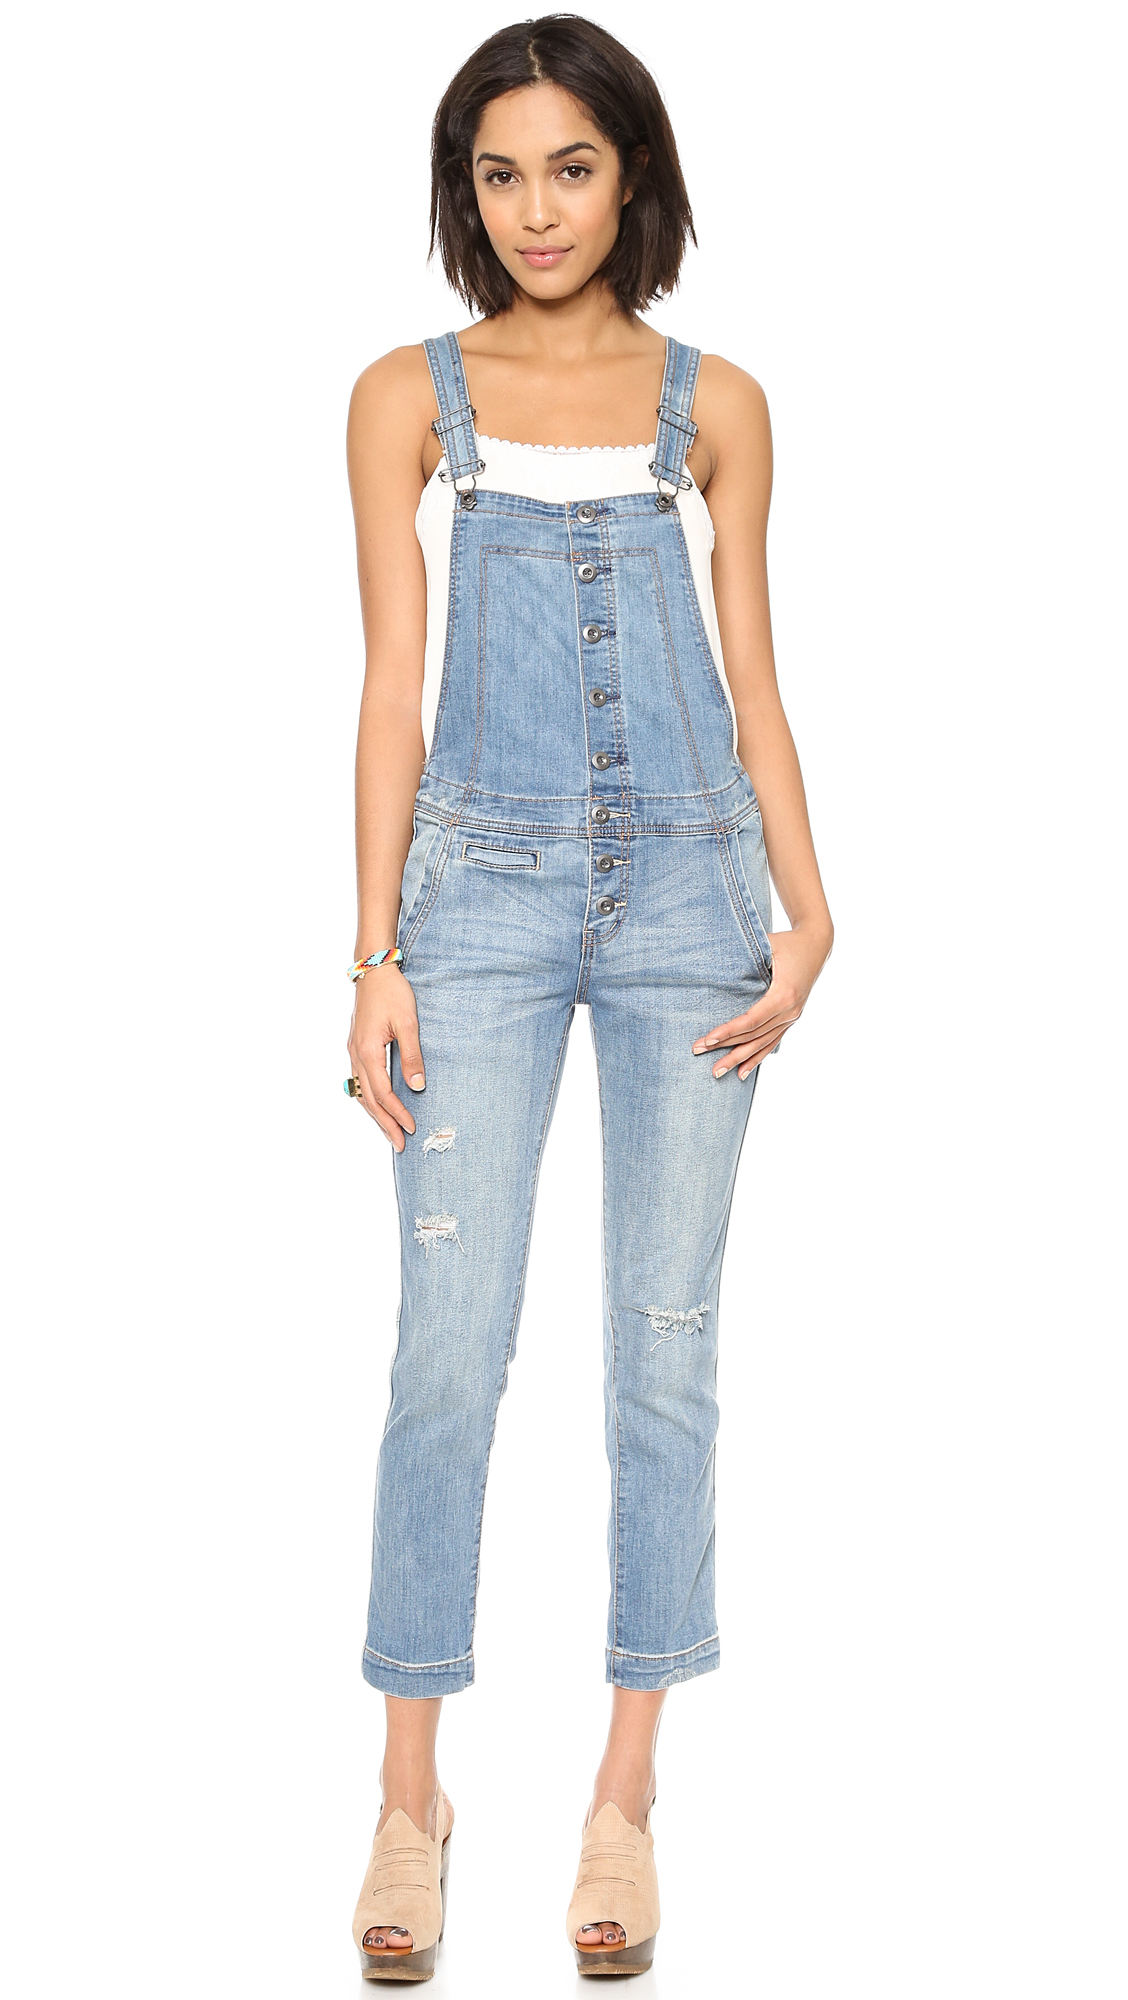 Lyst - Free People Button Front Overalls - True Wash in Blue